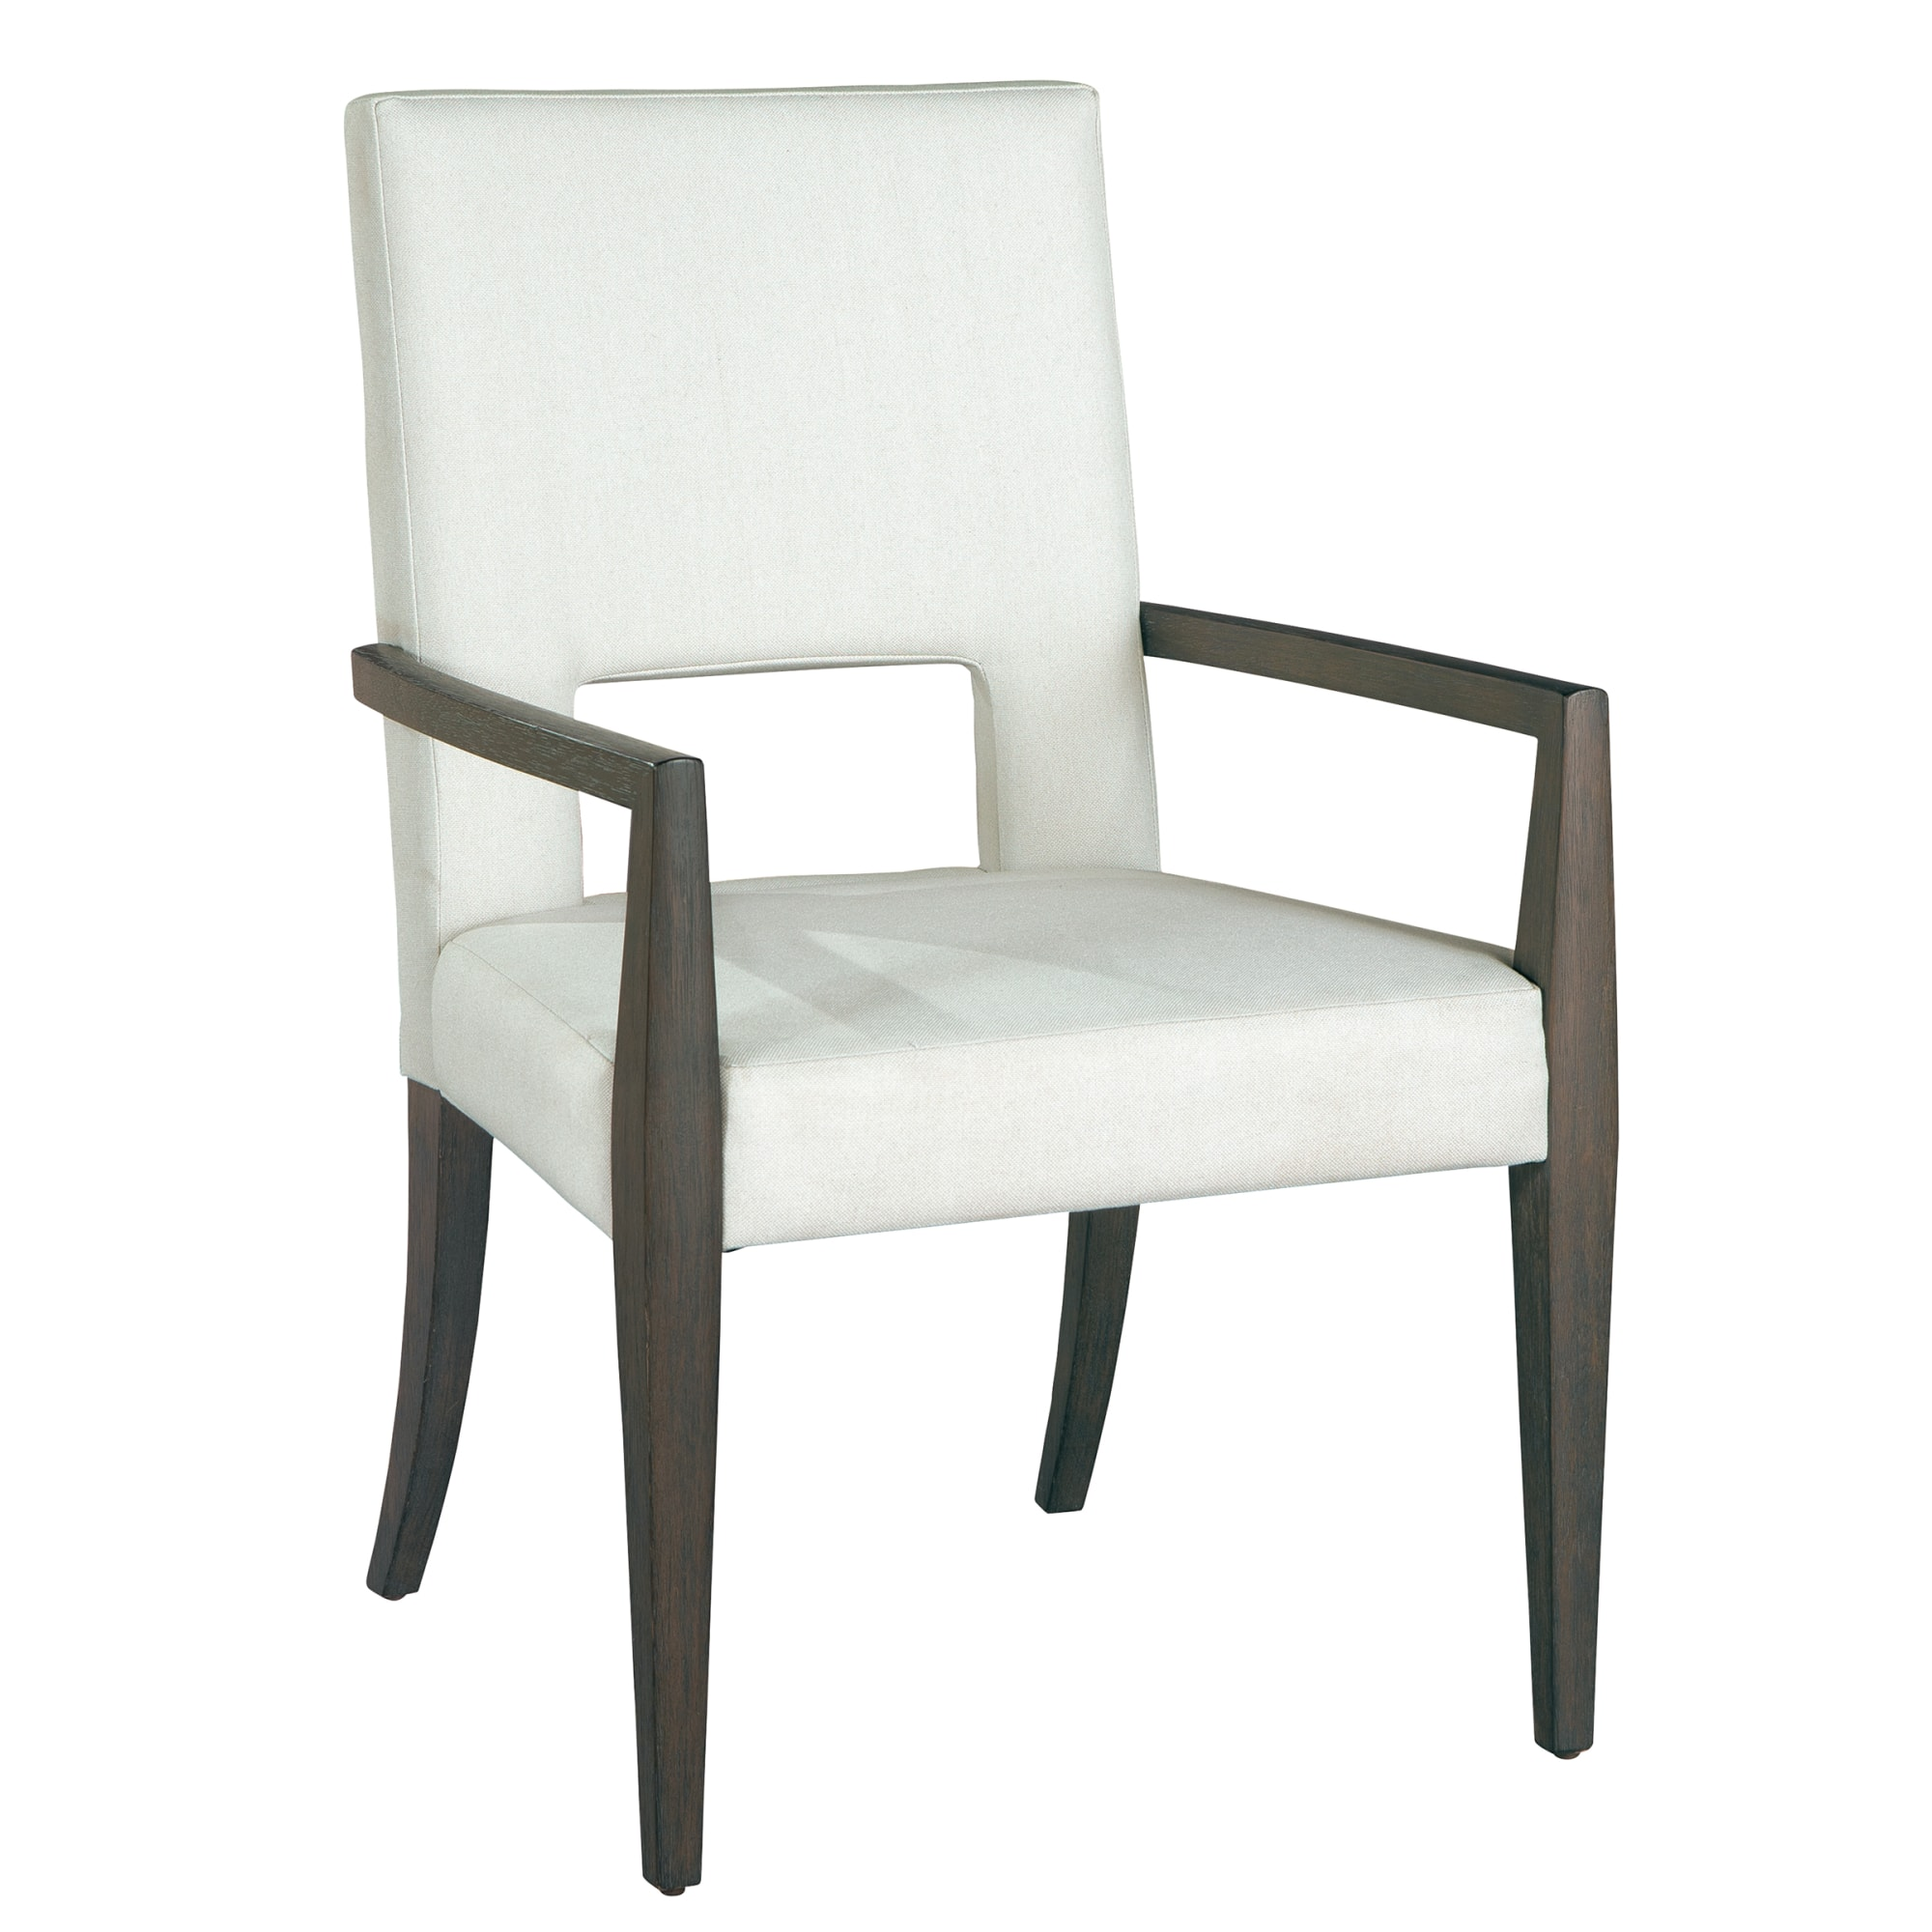 Image for 2-3822 Edgewater Upholstered Arm Chair from Hekman Official Website